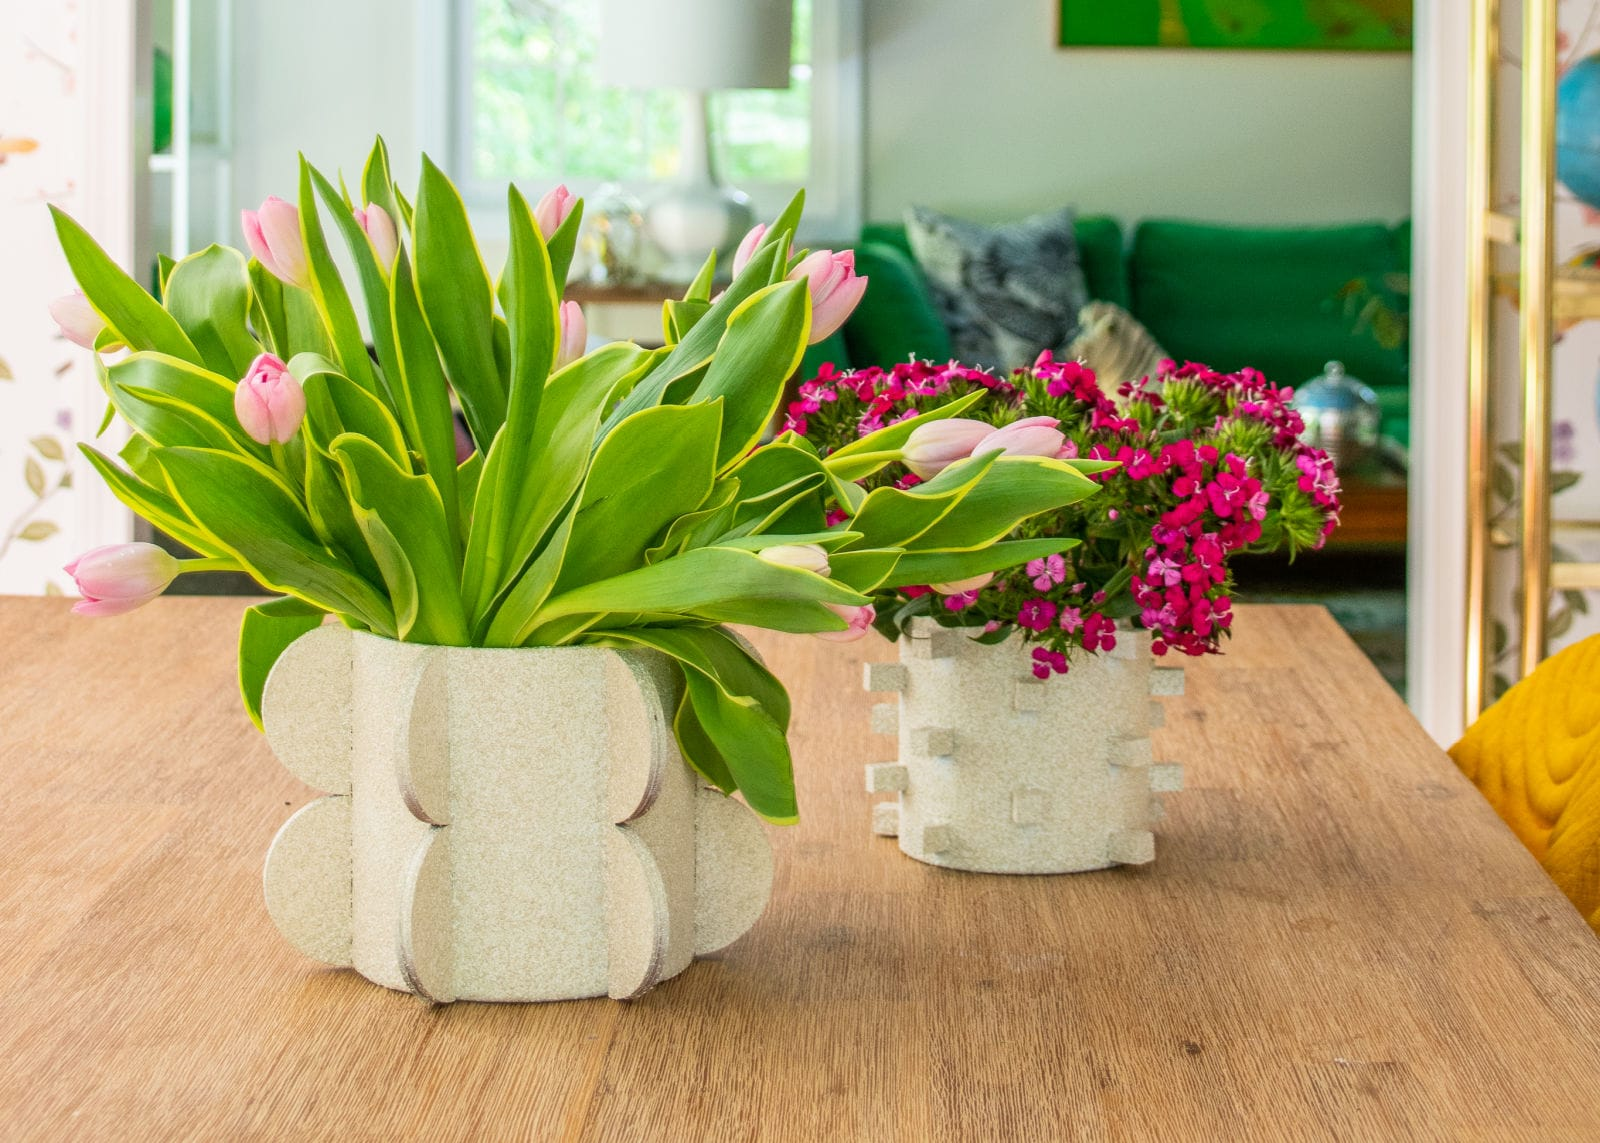 graphic shaped vases